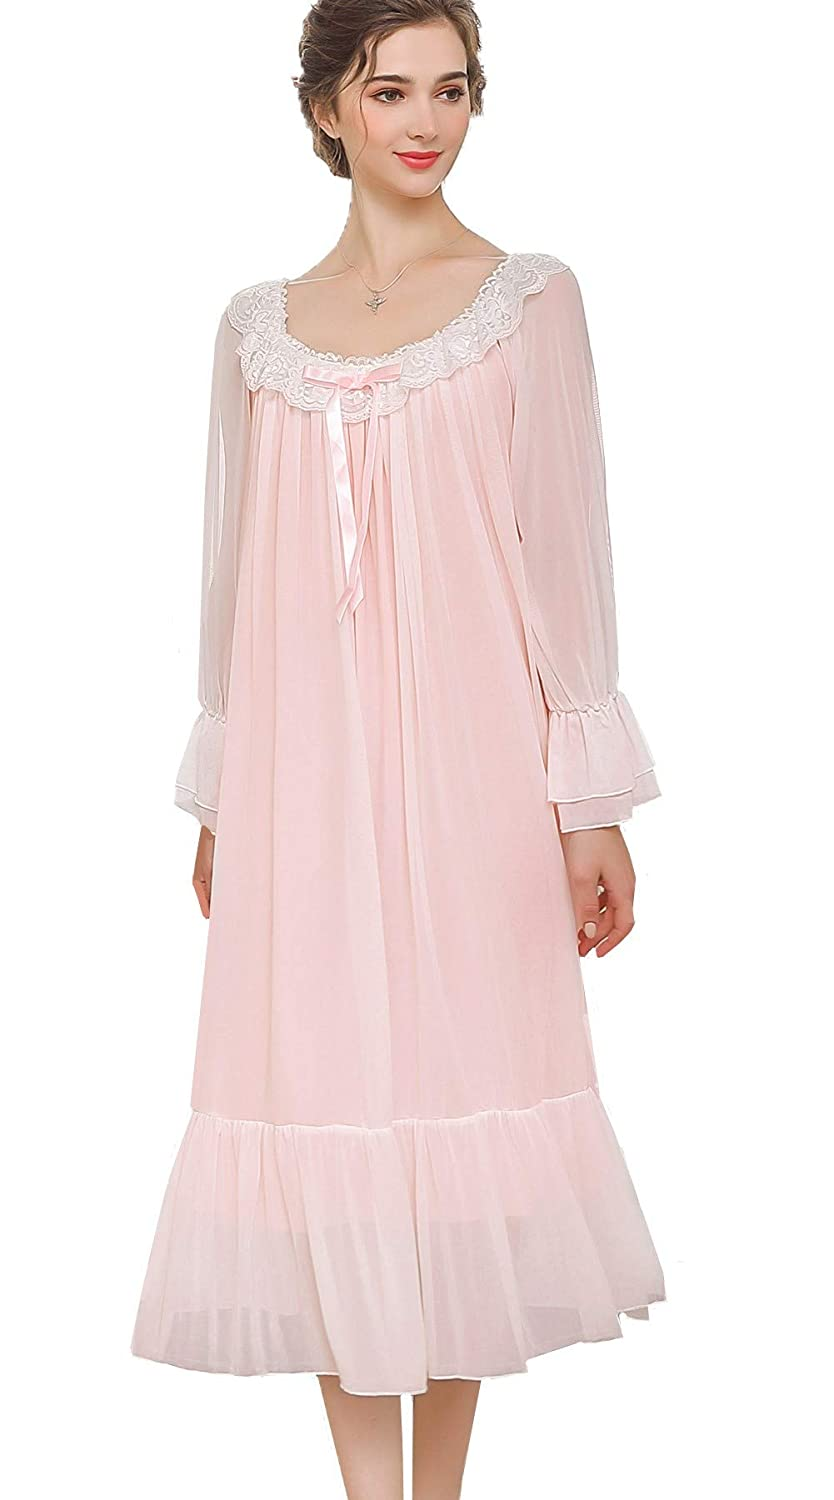 floral eyelet lace vintage 1800s M L White Victorian nightgown long sleeve full-length sleep dress antique cotton